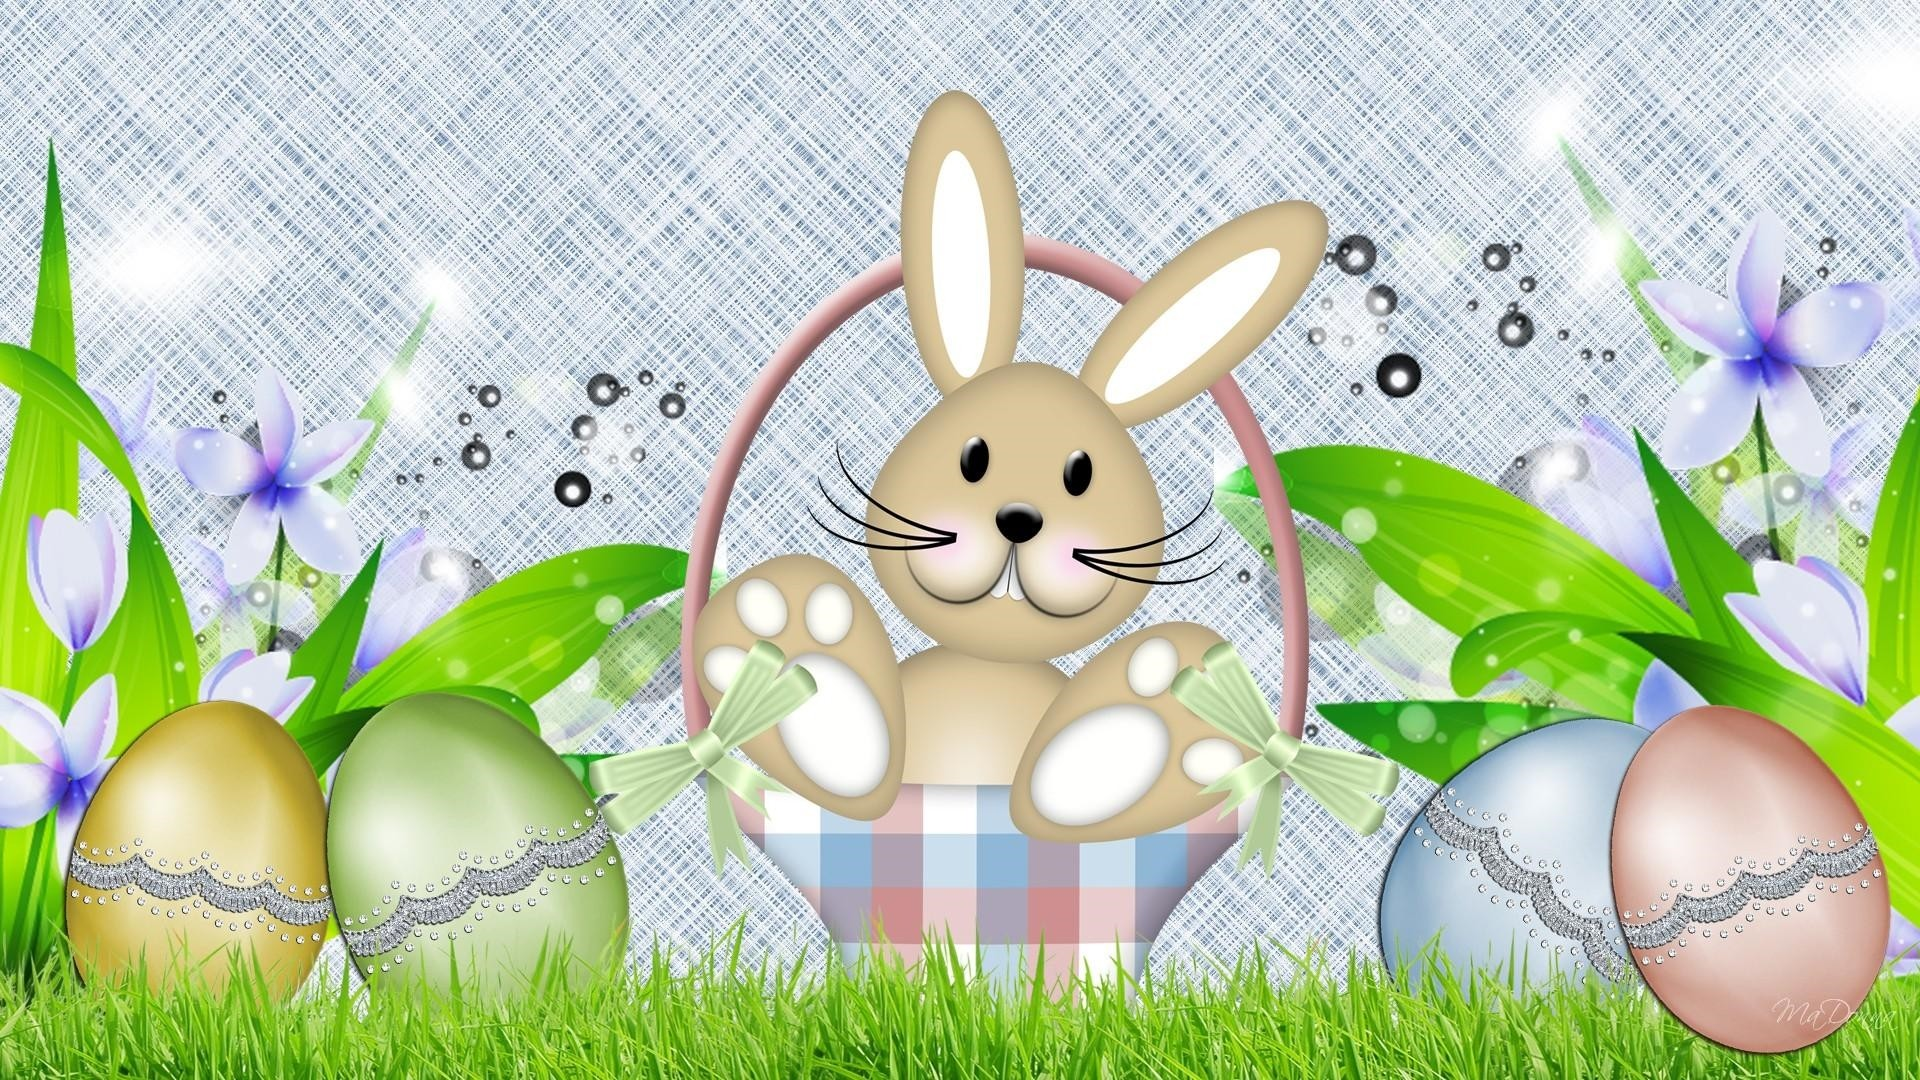 Easter 2020 Wallpaper Pic